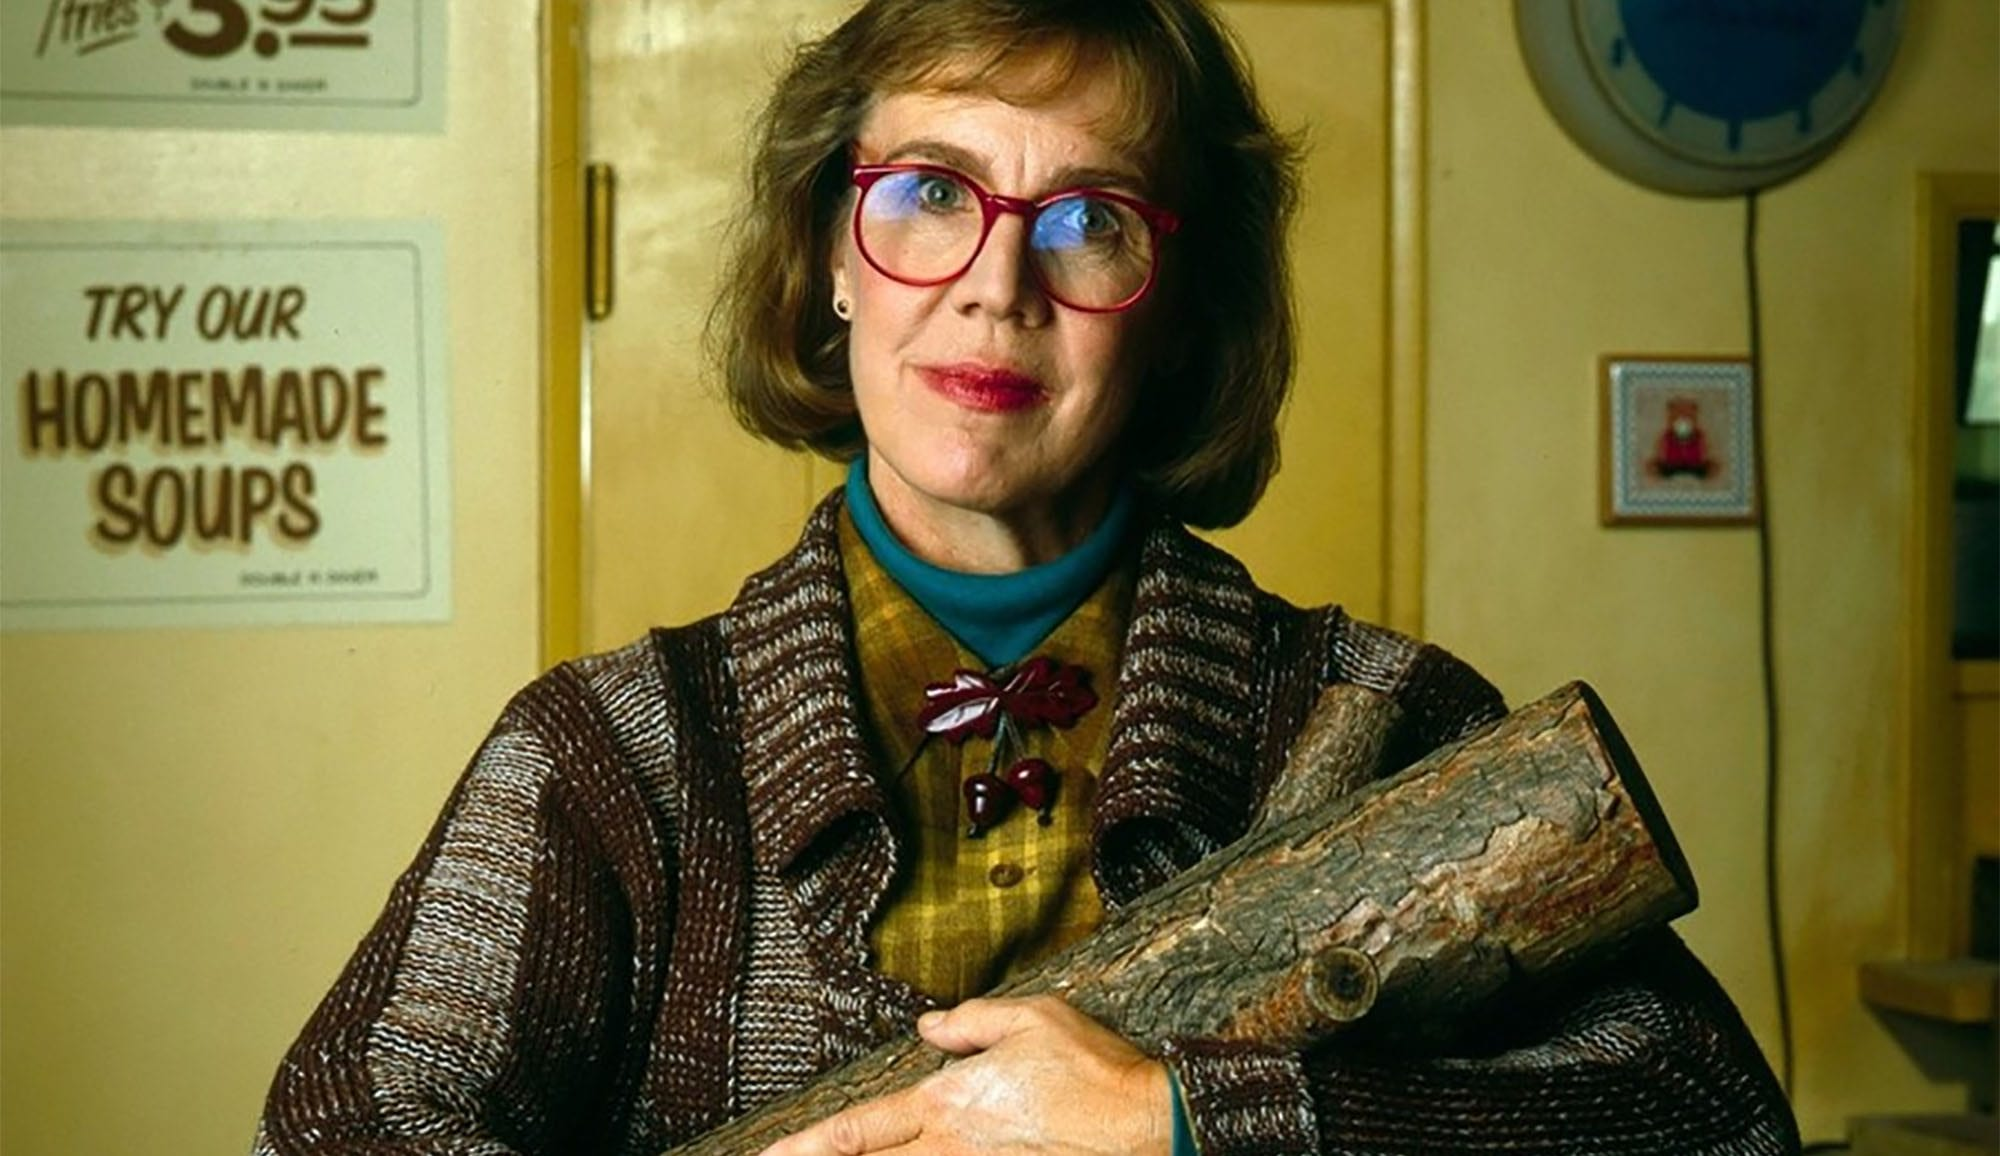 Catherine E. Coulson plays iconic 'Twin Peaks' character the Log Lady. Here's a ranking of eleven of the Log Lady's most essential words of wisdom.